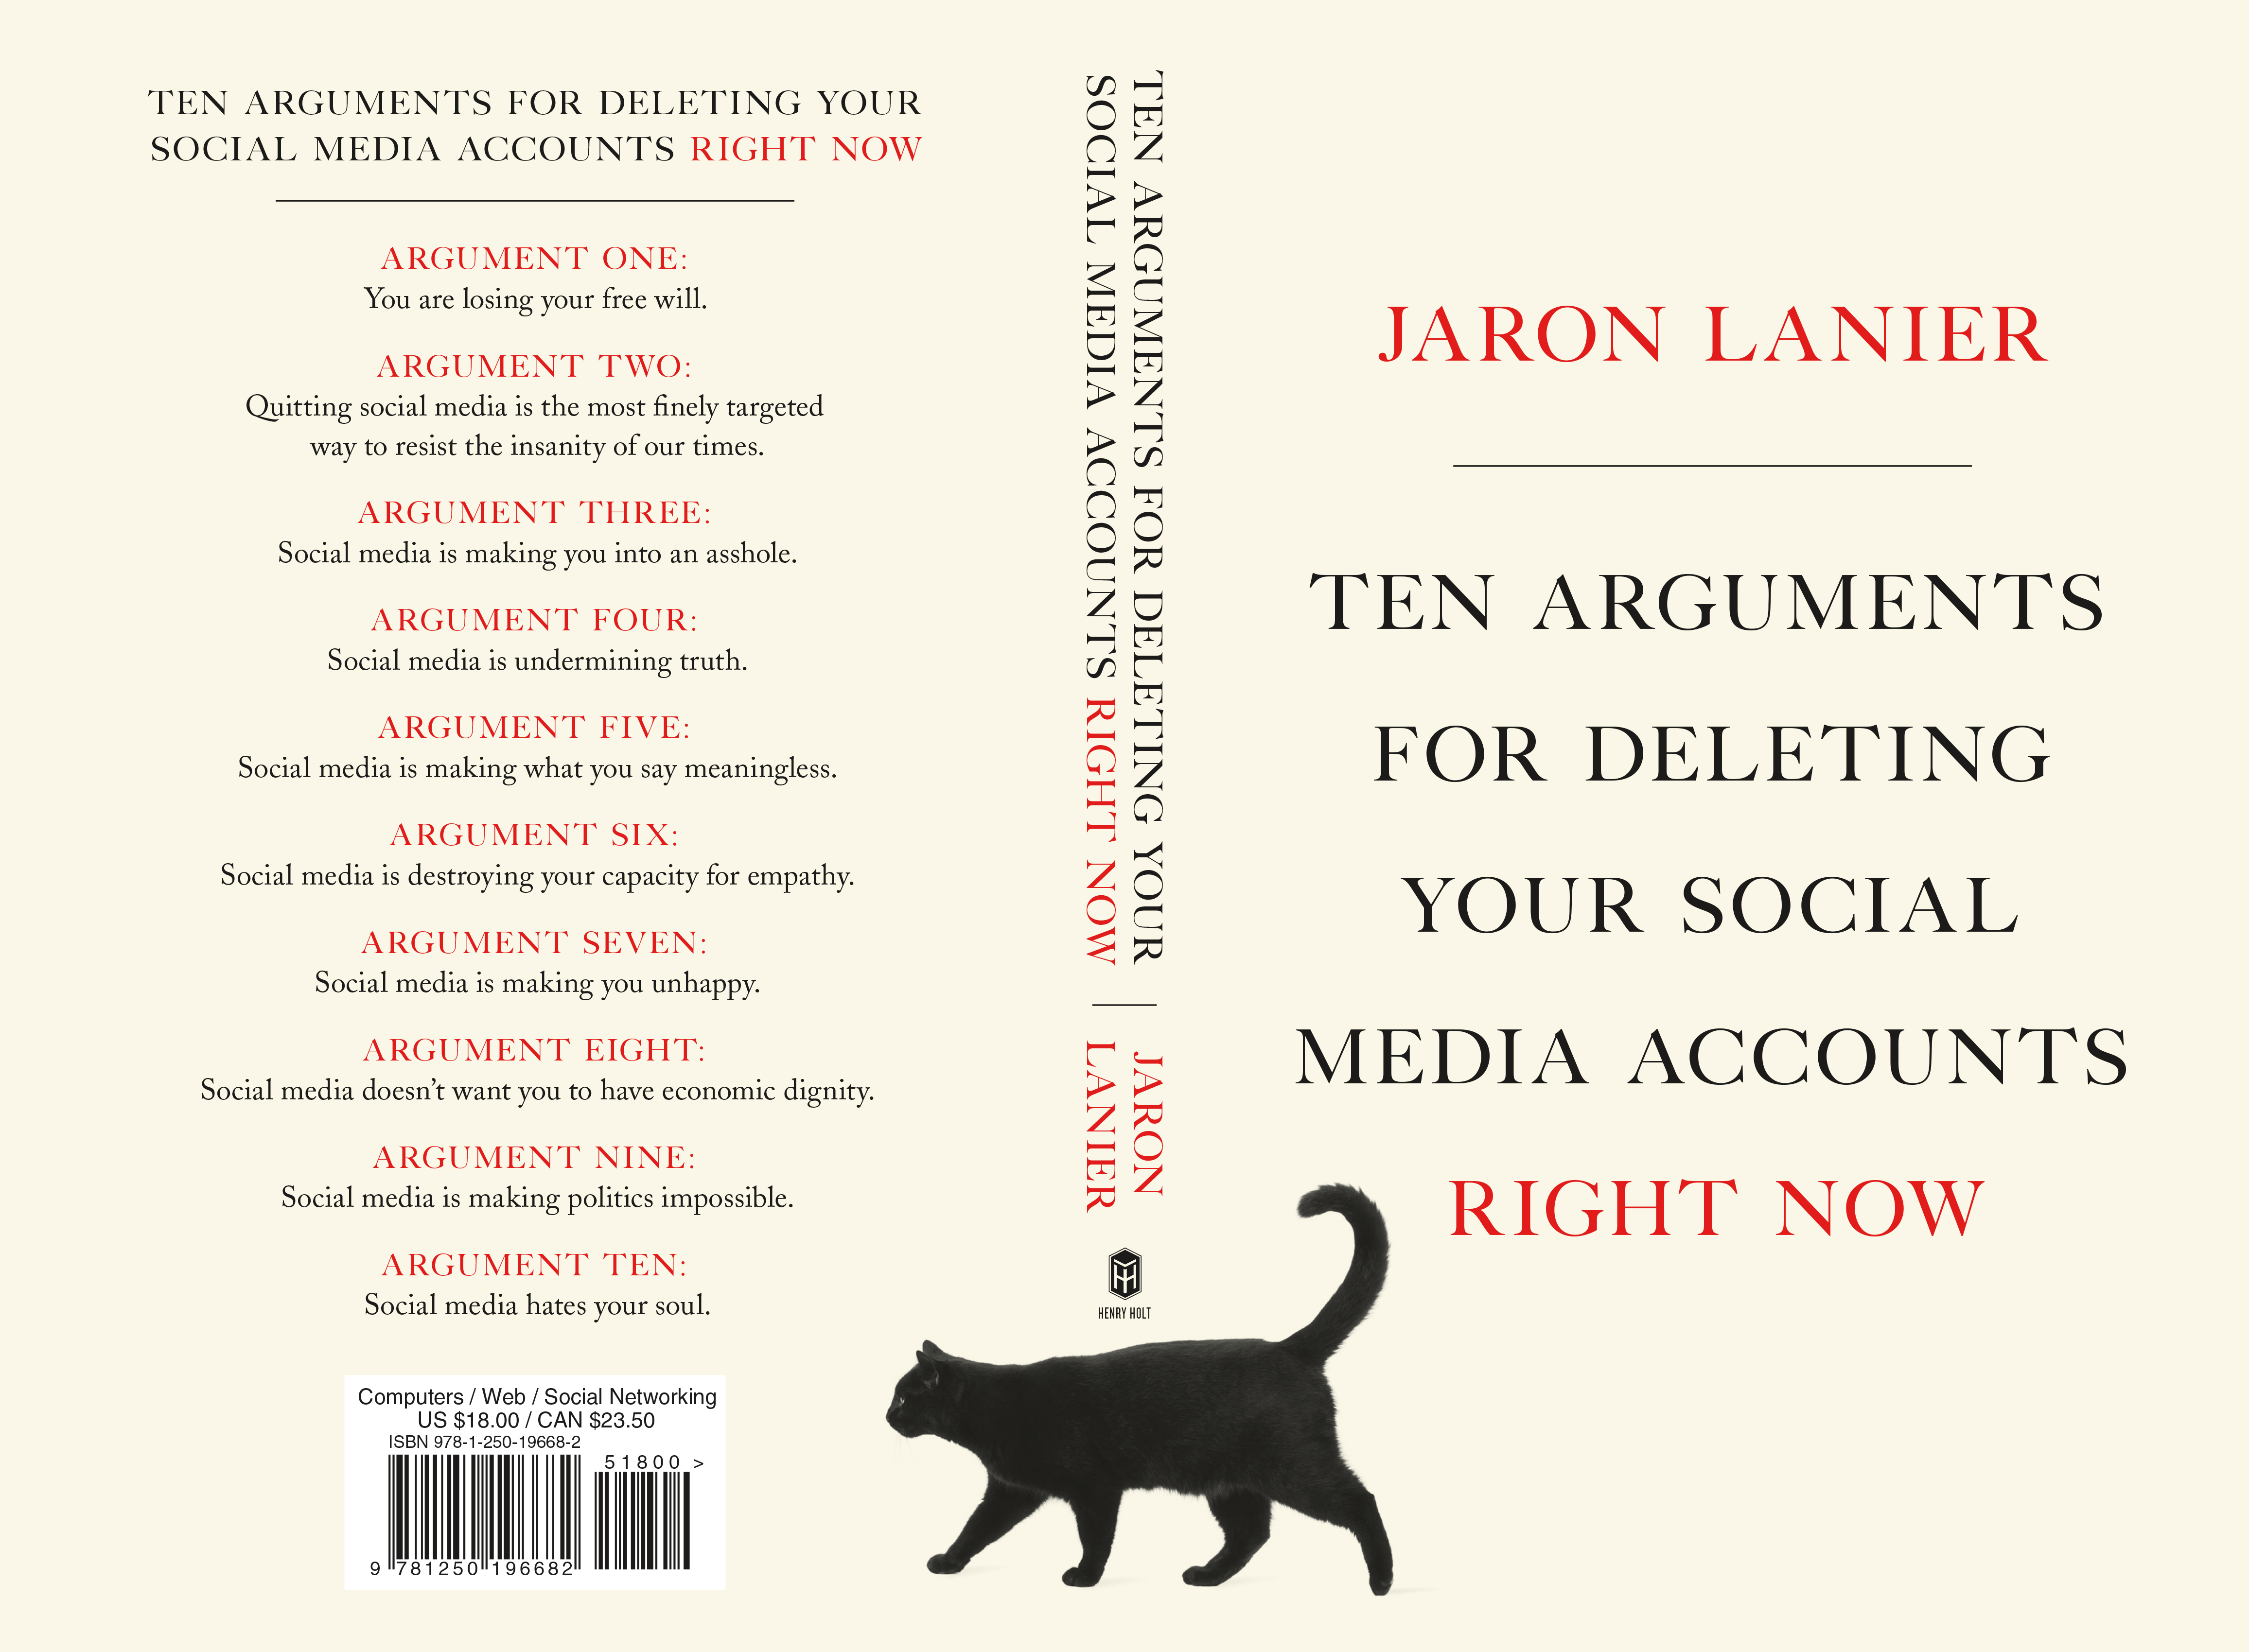 USA edition of Ten Arguments for Deleting Your Social Media Accounts Right Now